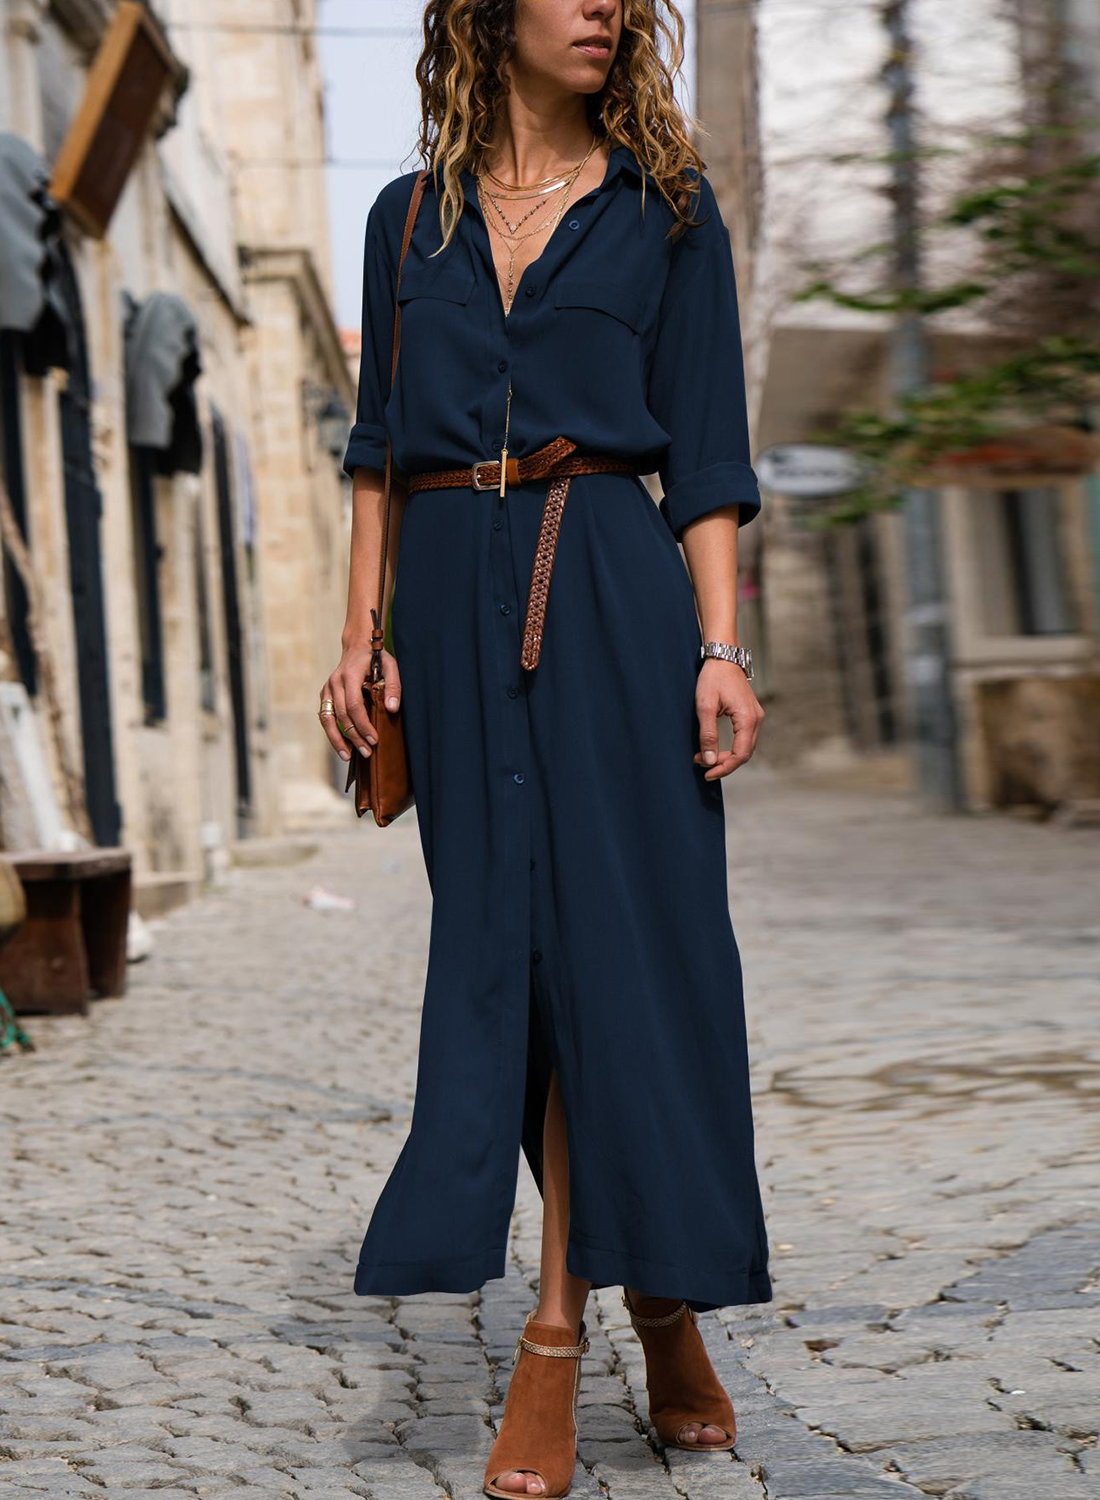 7d69ac0a9e7 Casual Long Sleeve Loose Button Down Maxi Dress With Pockets STYLESIMO.com. Loading  zoom